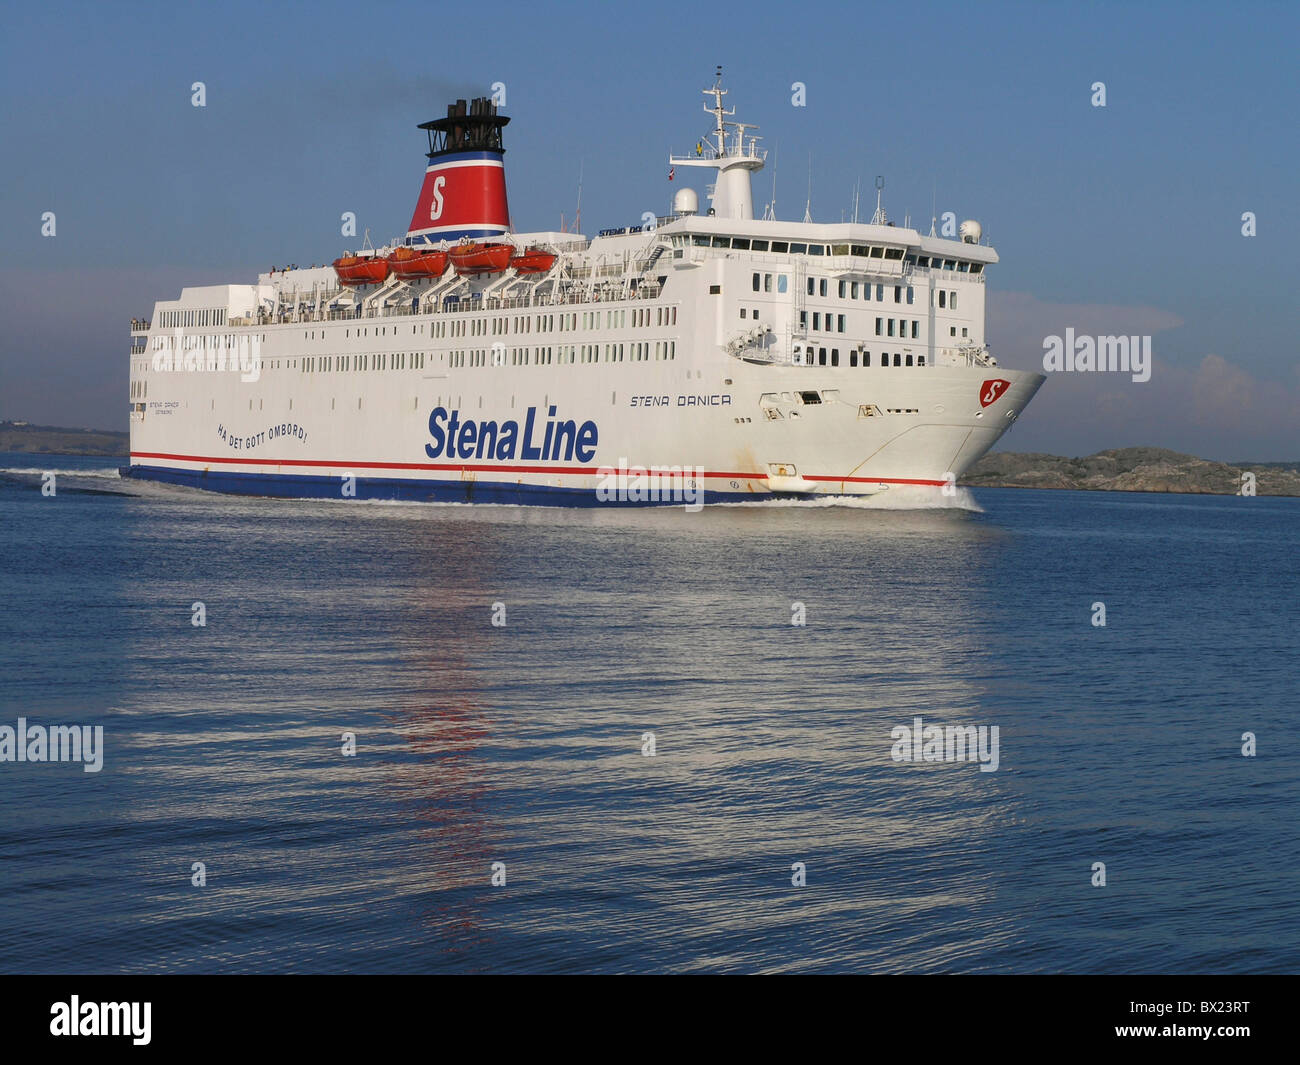 Auto ferry boat ferry ferry boat sea ship stena line sweden europe auto ferry boat ferry ferry boat sea ship stena line sweden europe denmark europe traffic transport wat sciox Images